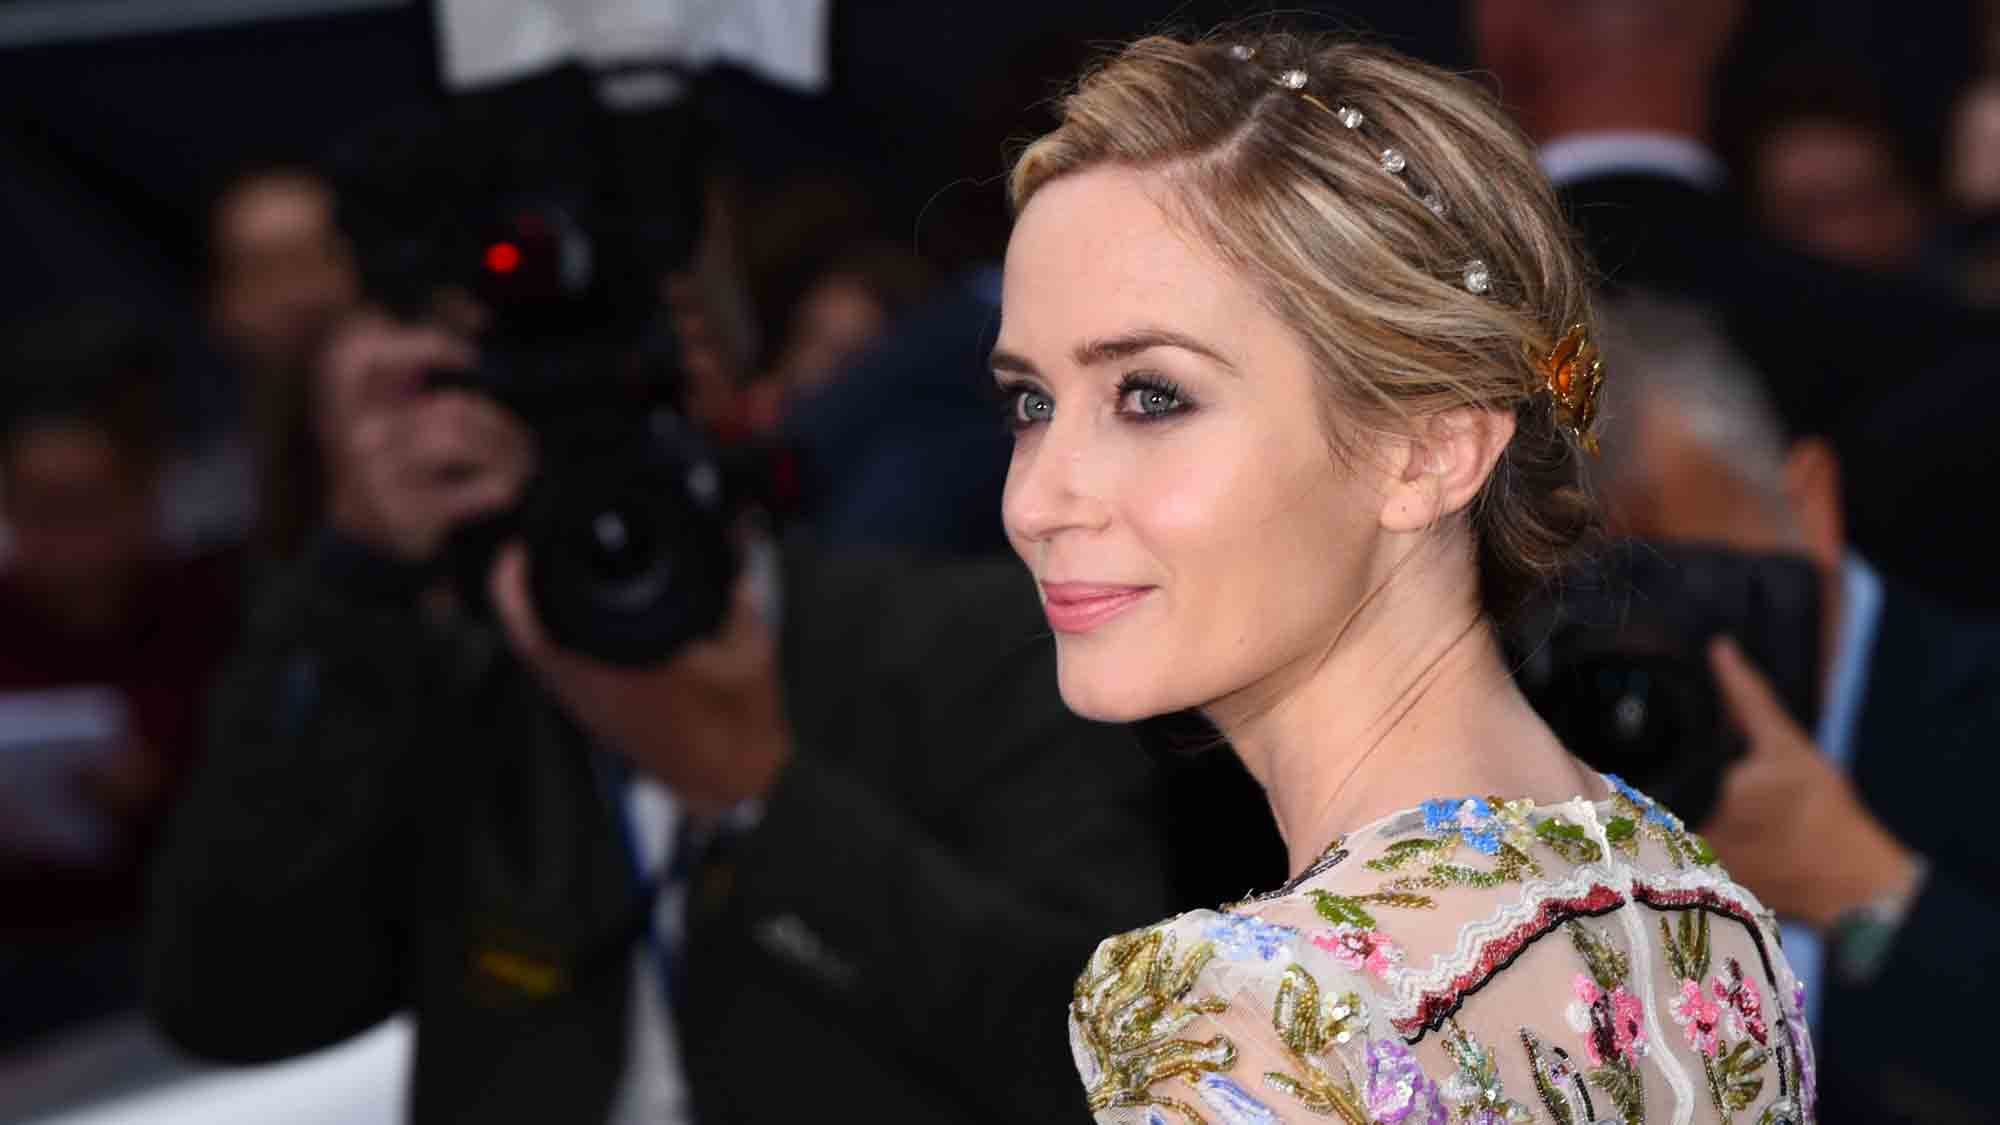 Emily Blunt at The Girl on the Train premiere